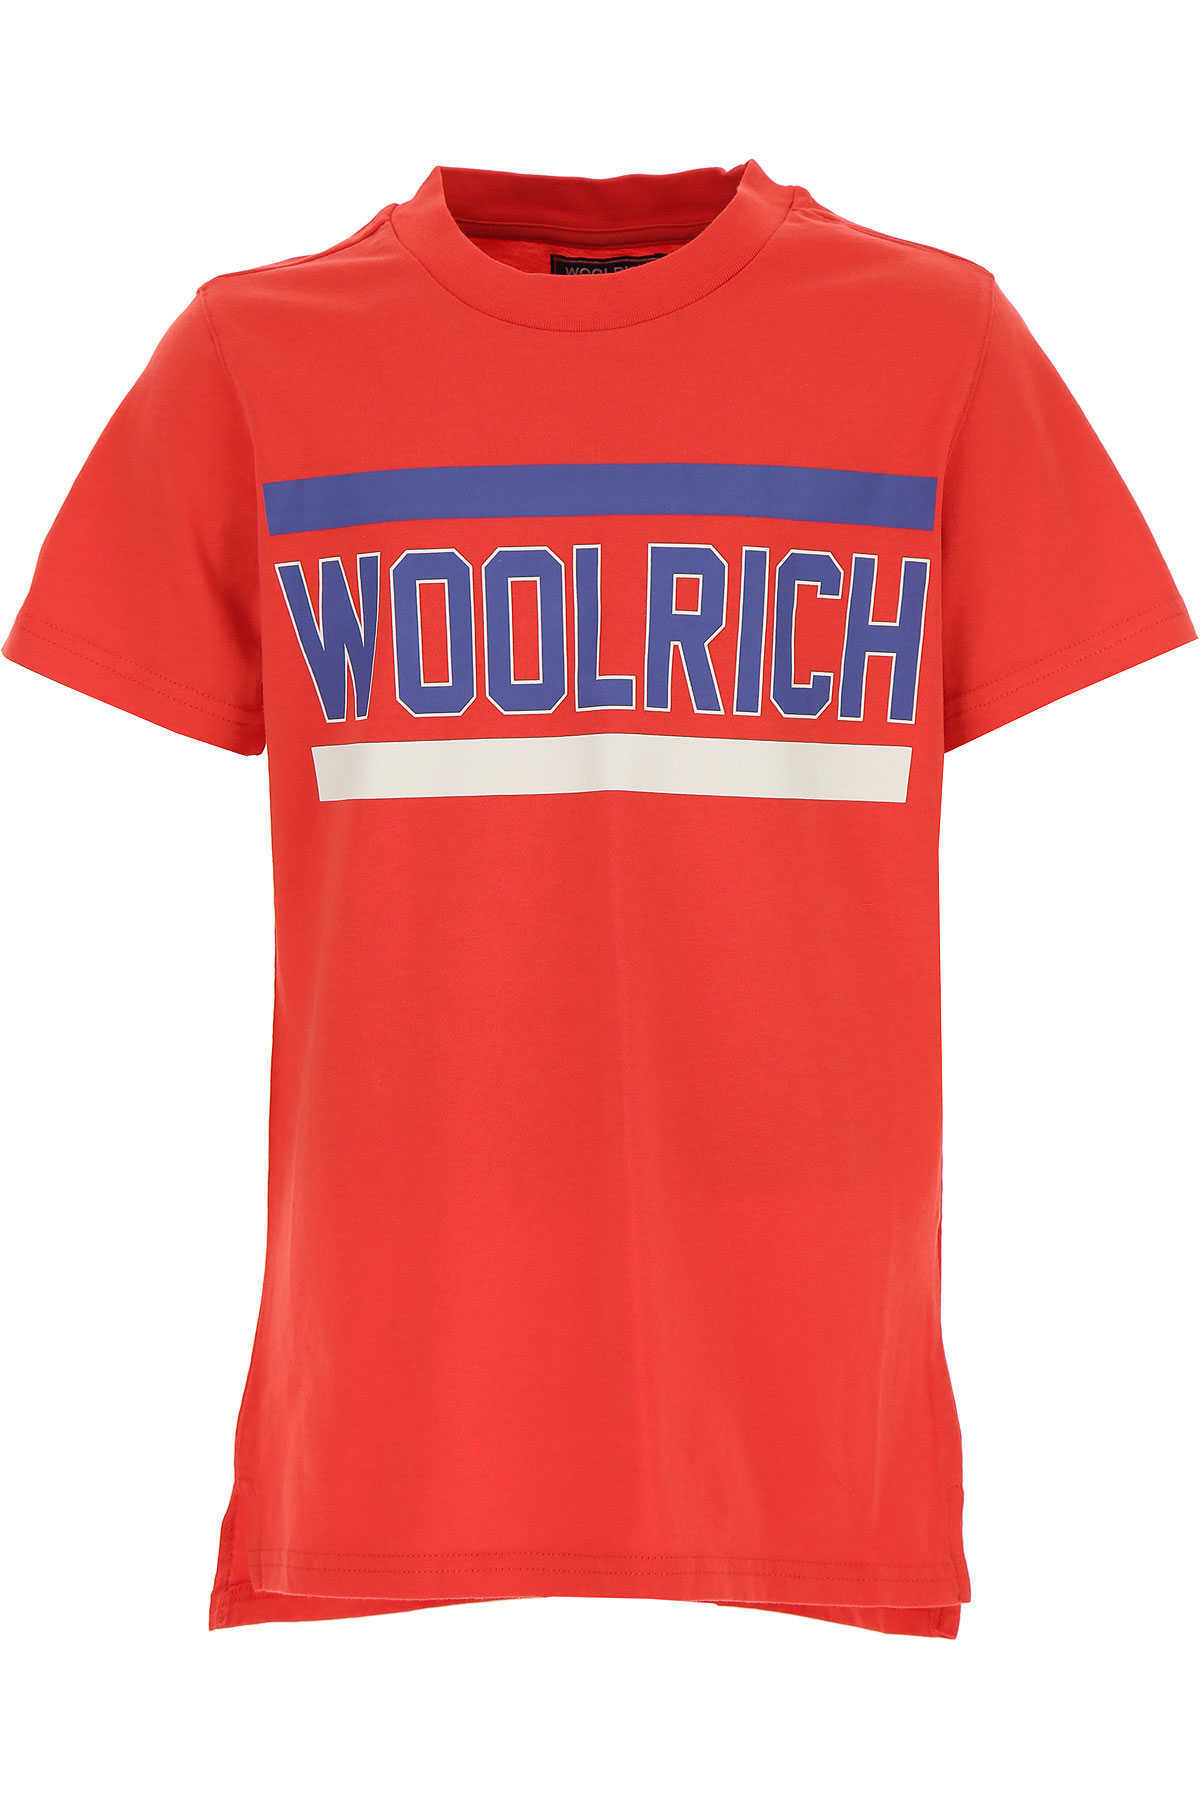 Woolrich Kids T-Shirt for Boys On Sale Red SE - GOOFASH